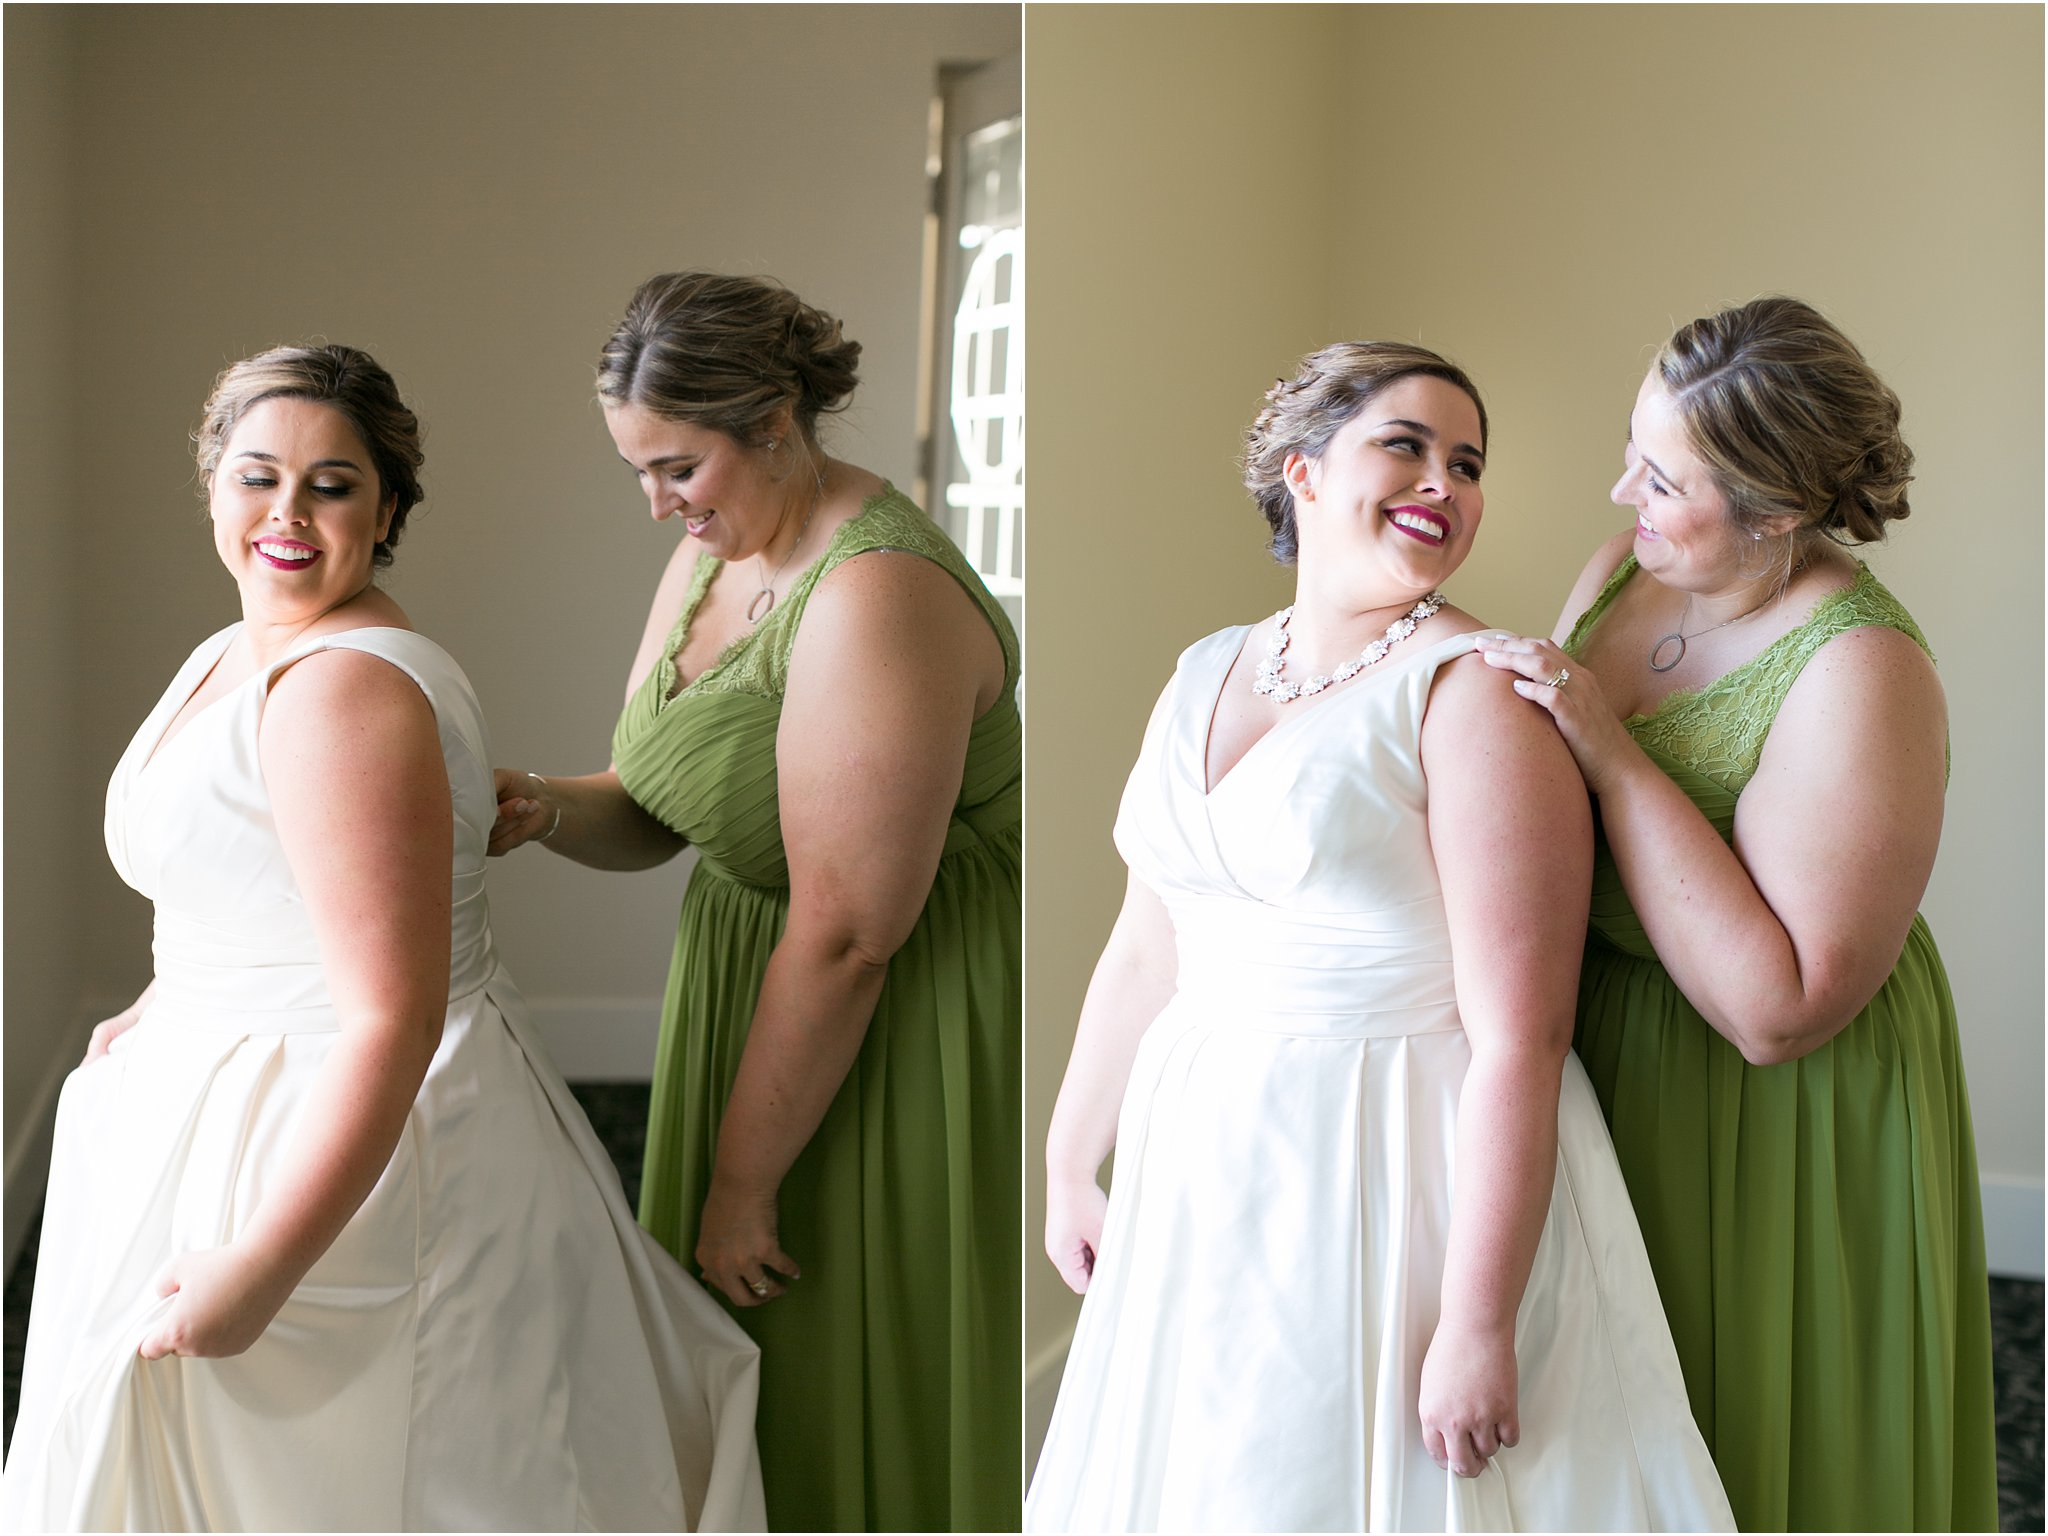 va_jessica_ryan_photography_virginia_wedding_norfolk_harrison_opera_house_norfolk_arts_district_portraits_3764